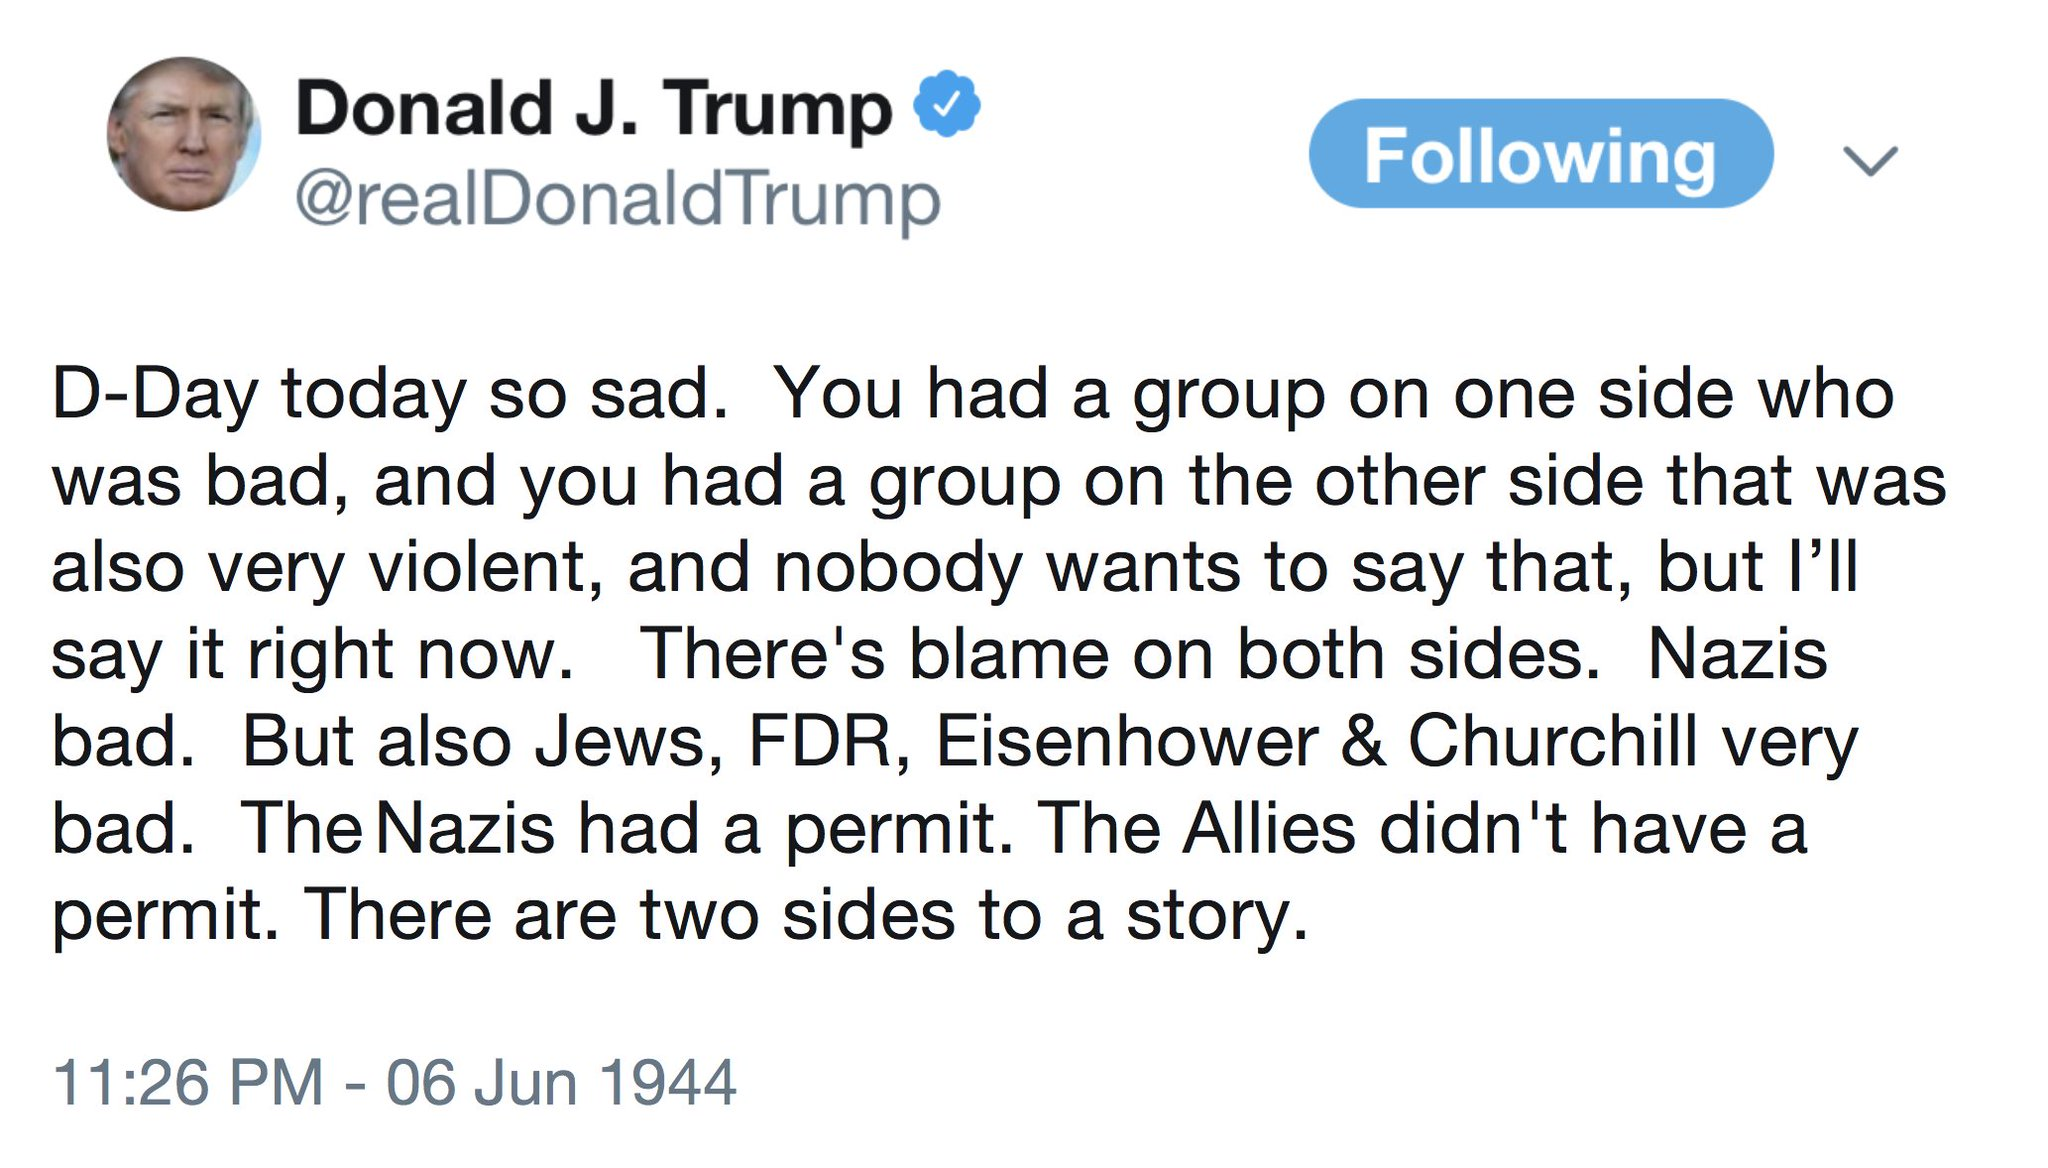 RT @TheMartinLewis: Just discovered! @realDonaldTrump tweet from June1944 about D-Day https://t.co/UMvdEQr9XS